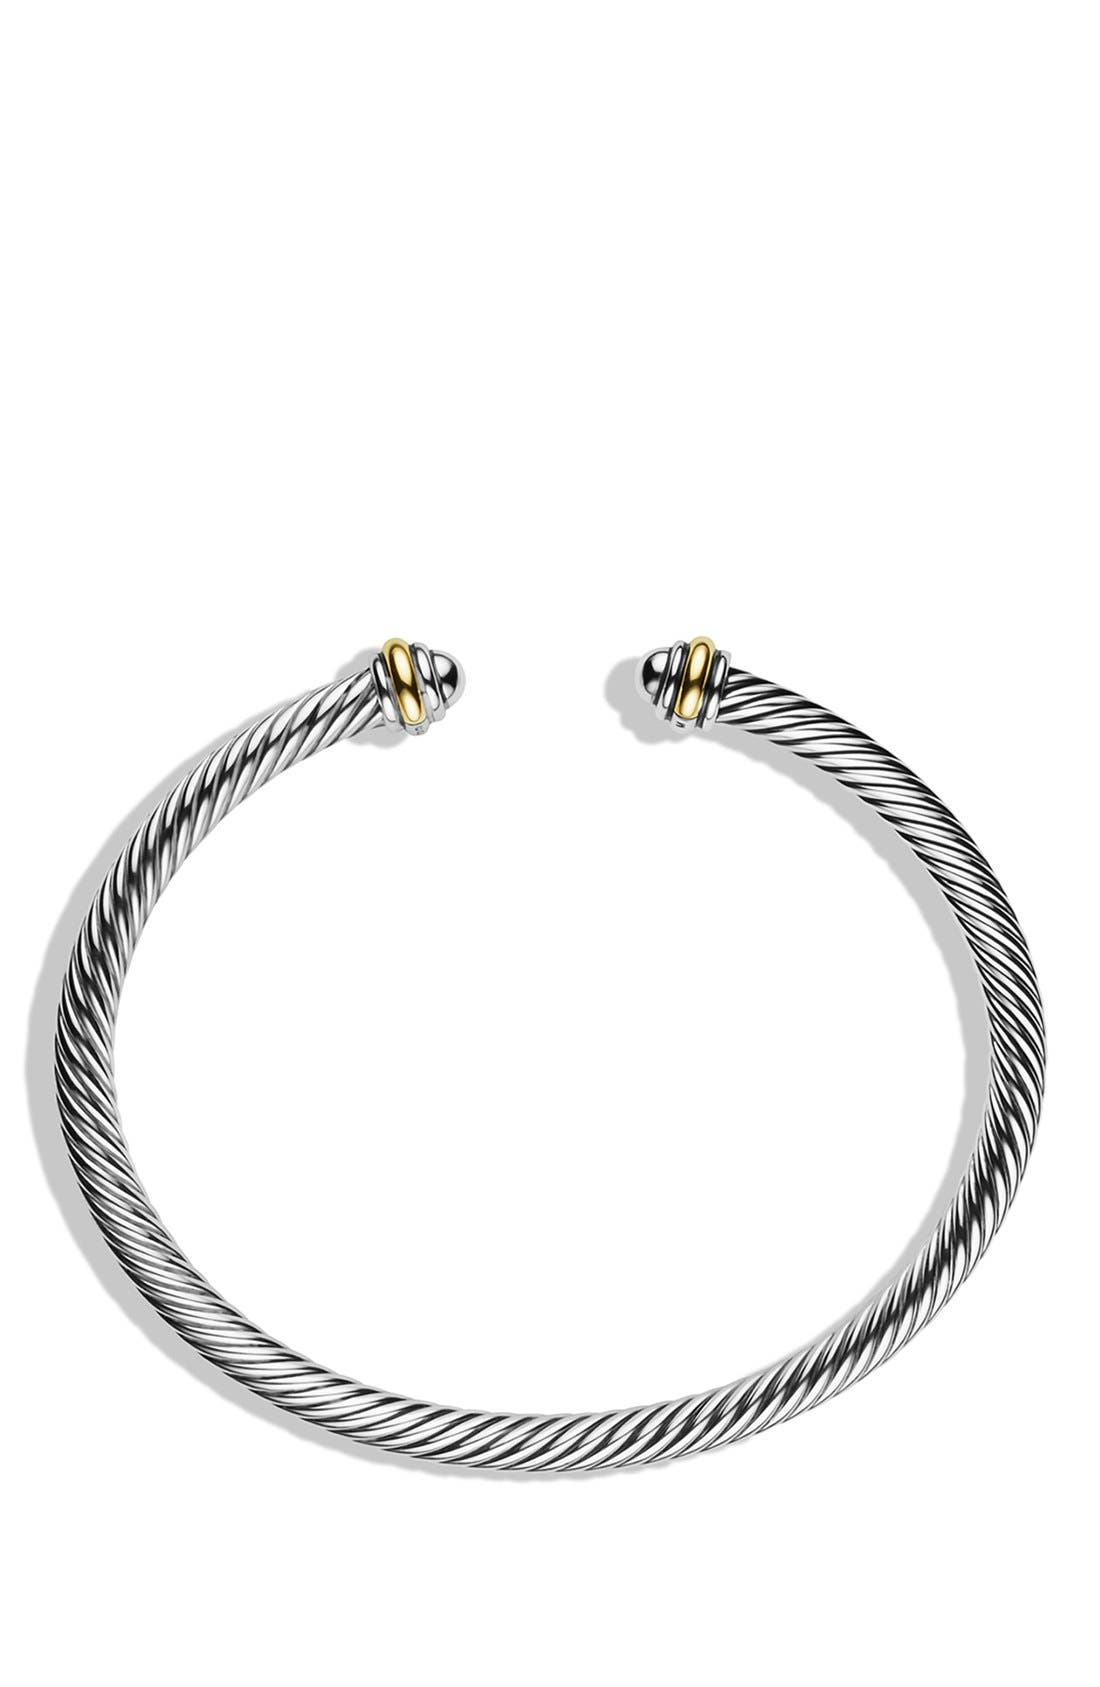 Cable Classics Bracelet with 18K Gold, 4mm,                             Alternate thumbnail 3, color,                             TWO TONE